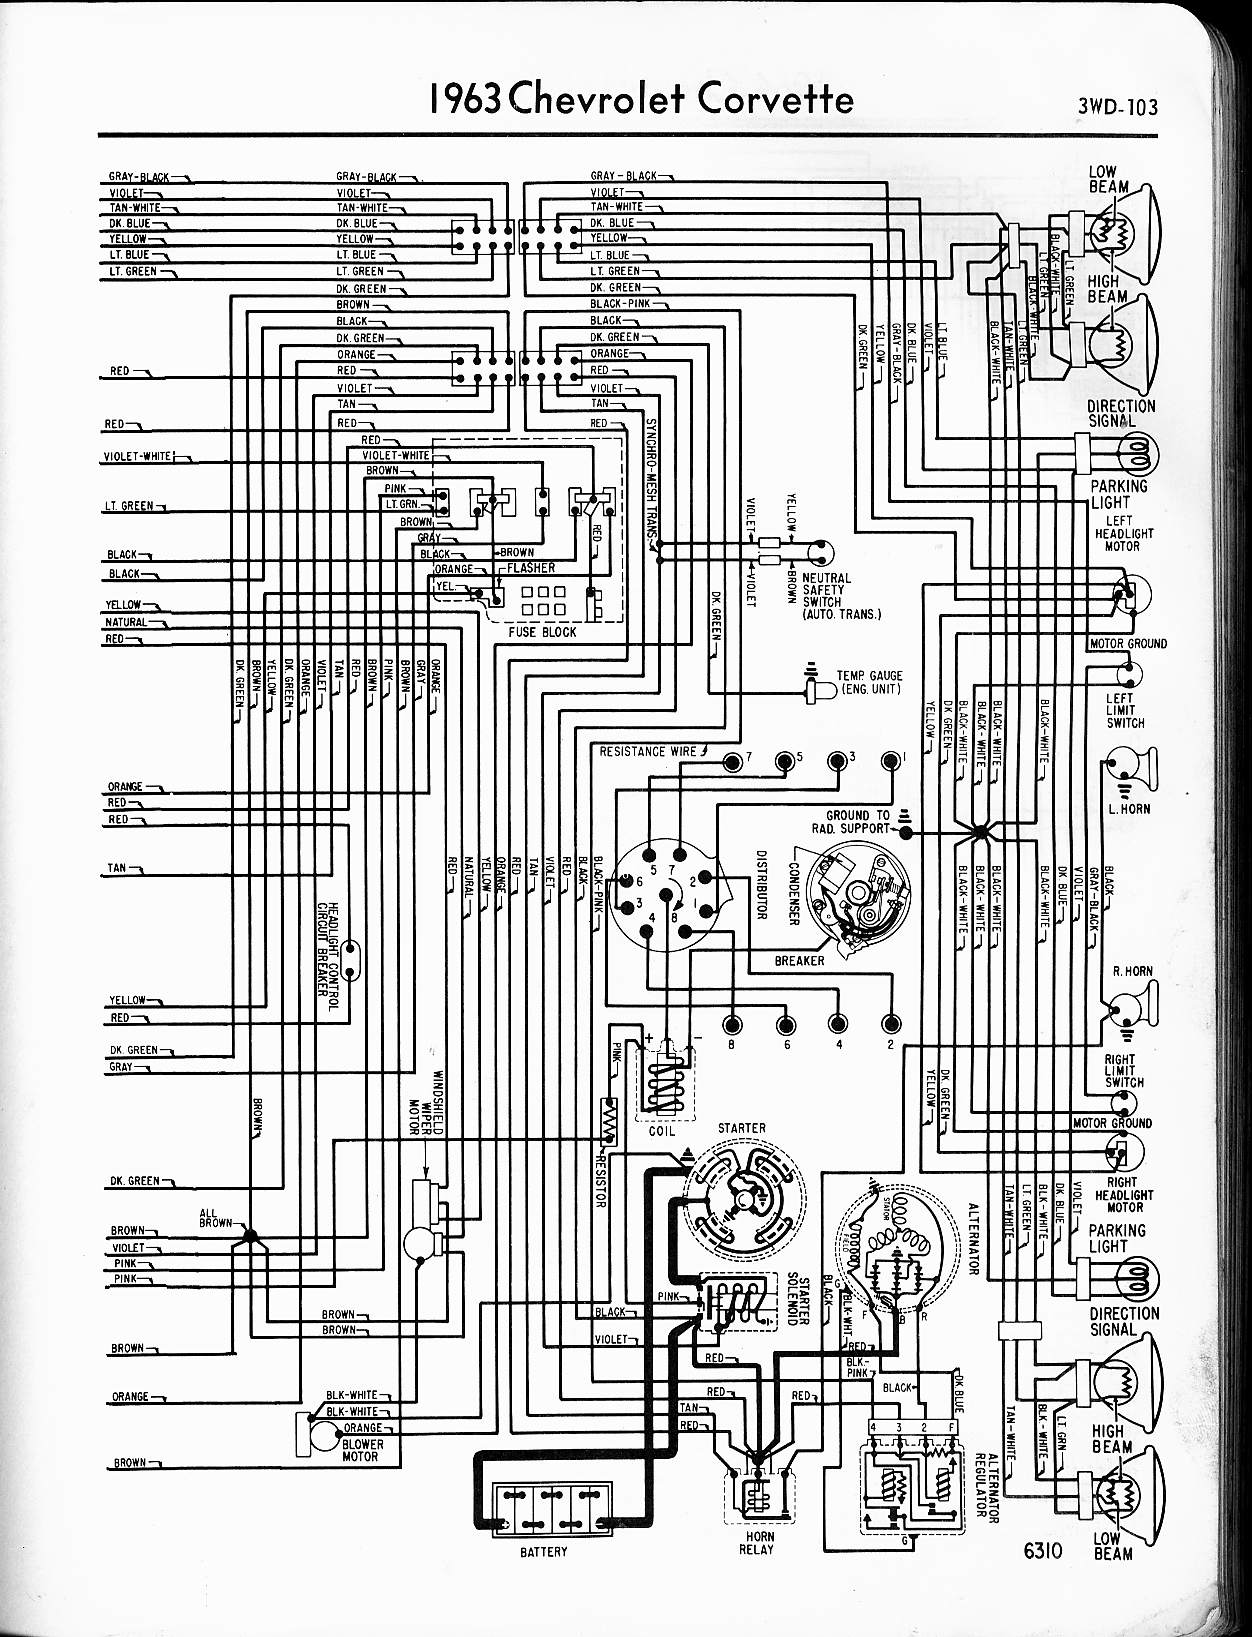 MWireChev63_3WD 103 1963 corvette wiring diagram 1963 corvette oil filter \u2022 wiring corvette electrical diagrams at mifinder.co